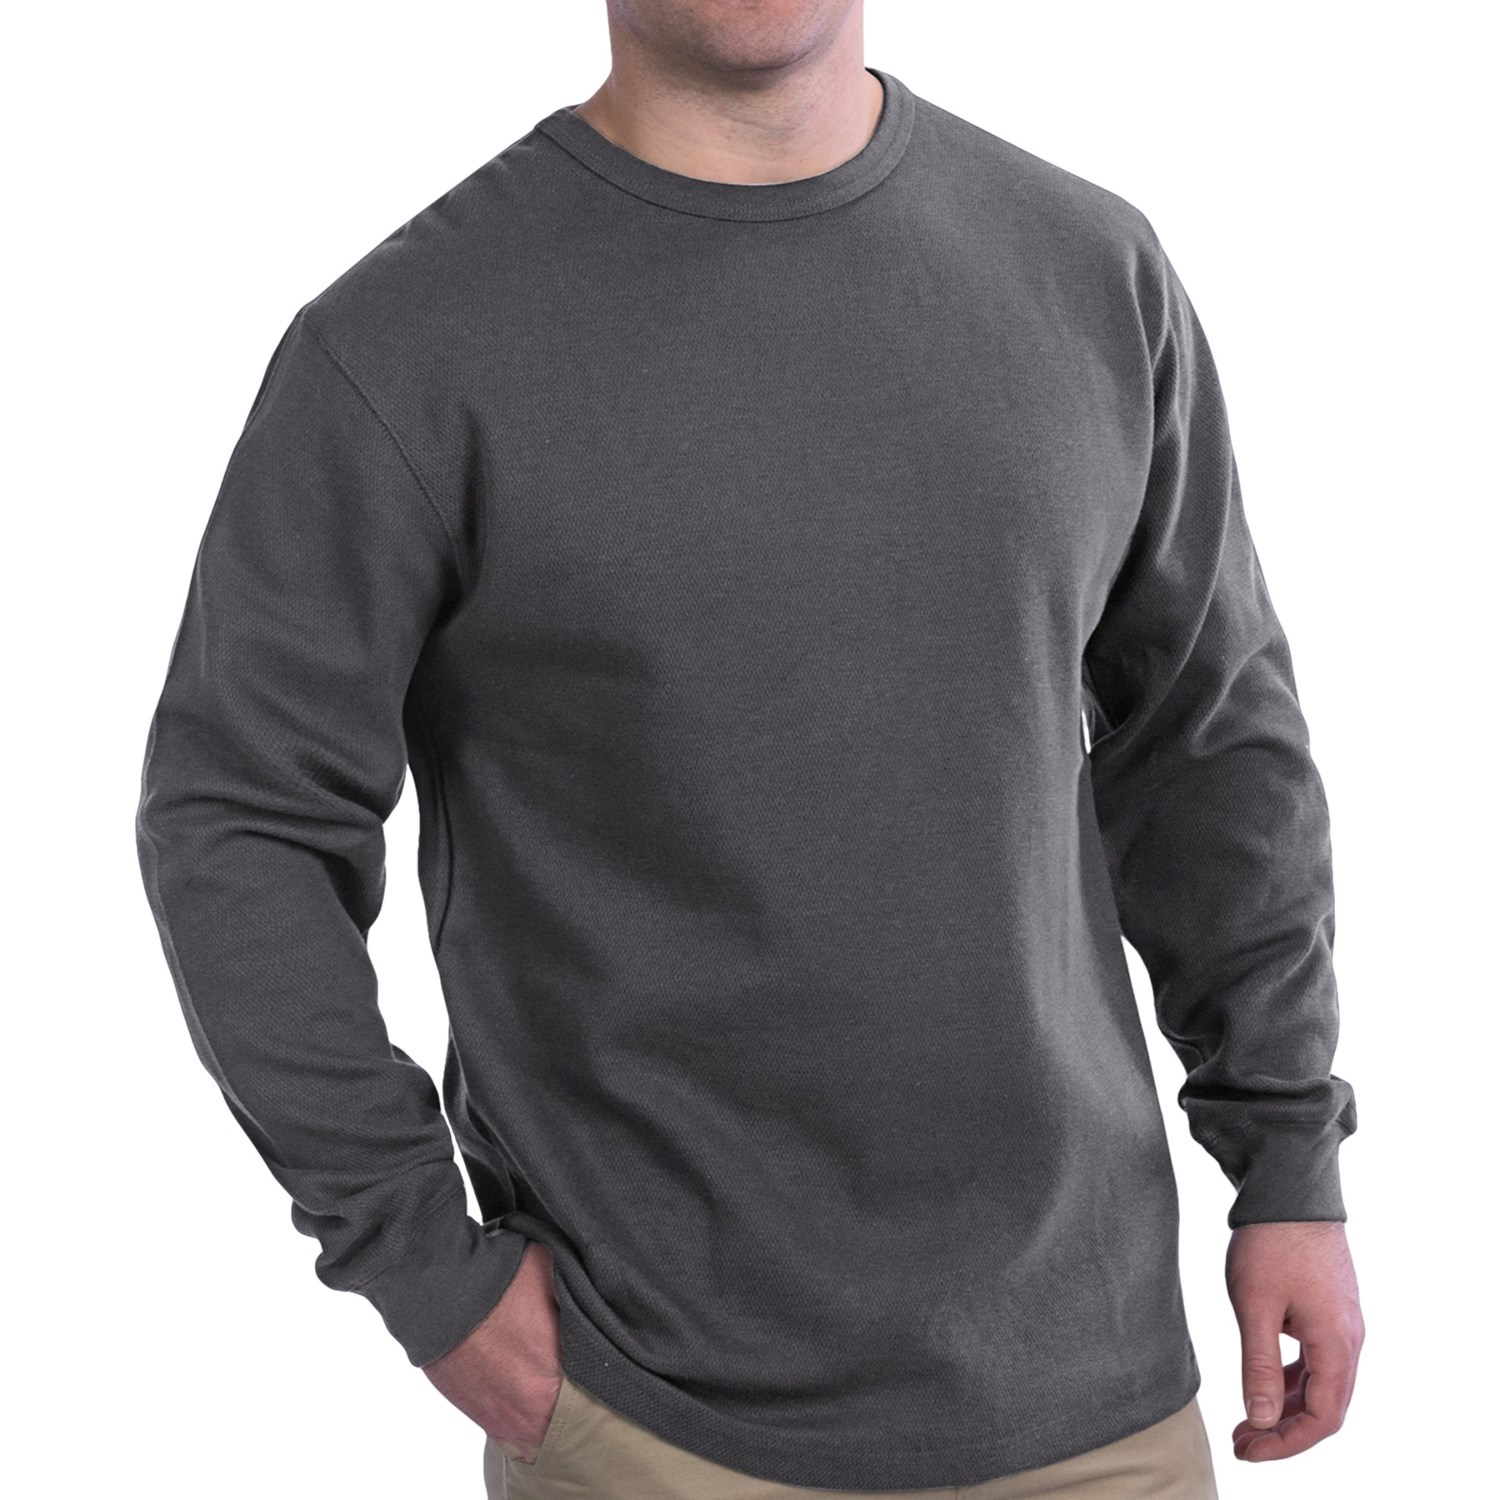 Free shipping BOTH ways on mens thermal long sleeve shirts, from our vast selection of styles. Fast delivery, and 24/7/ real-person service with a smile. Click or call